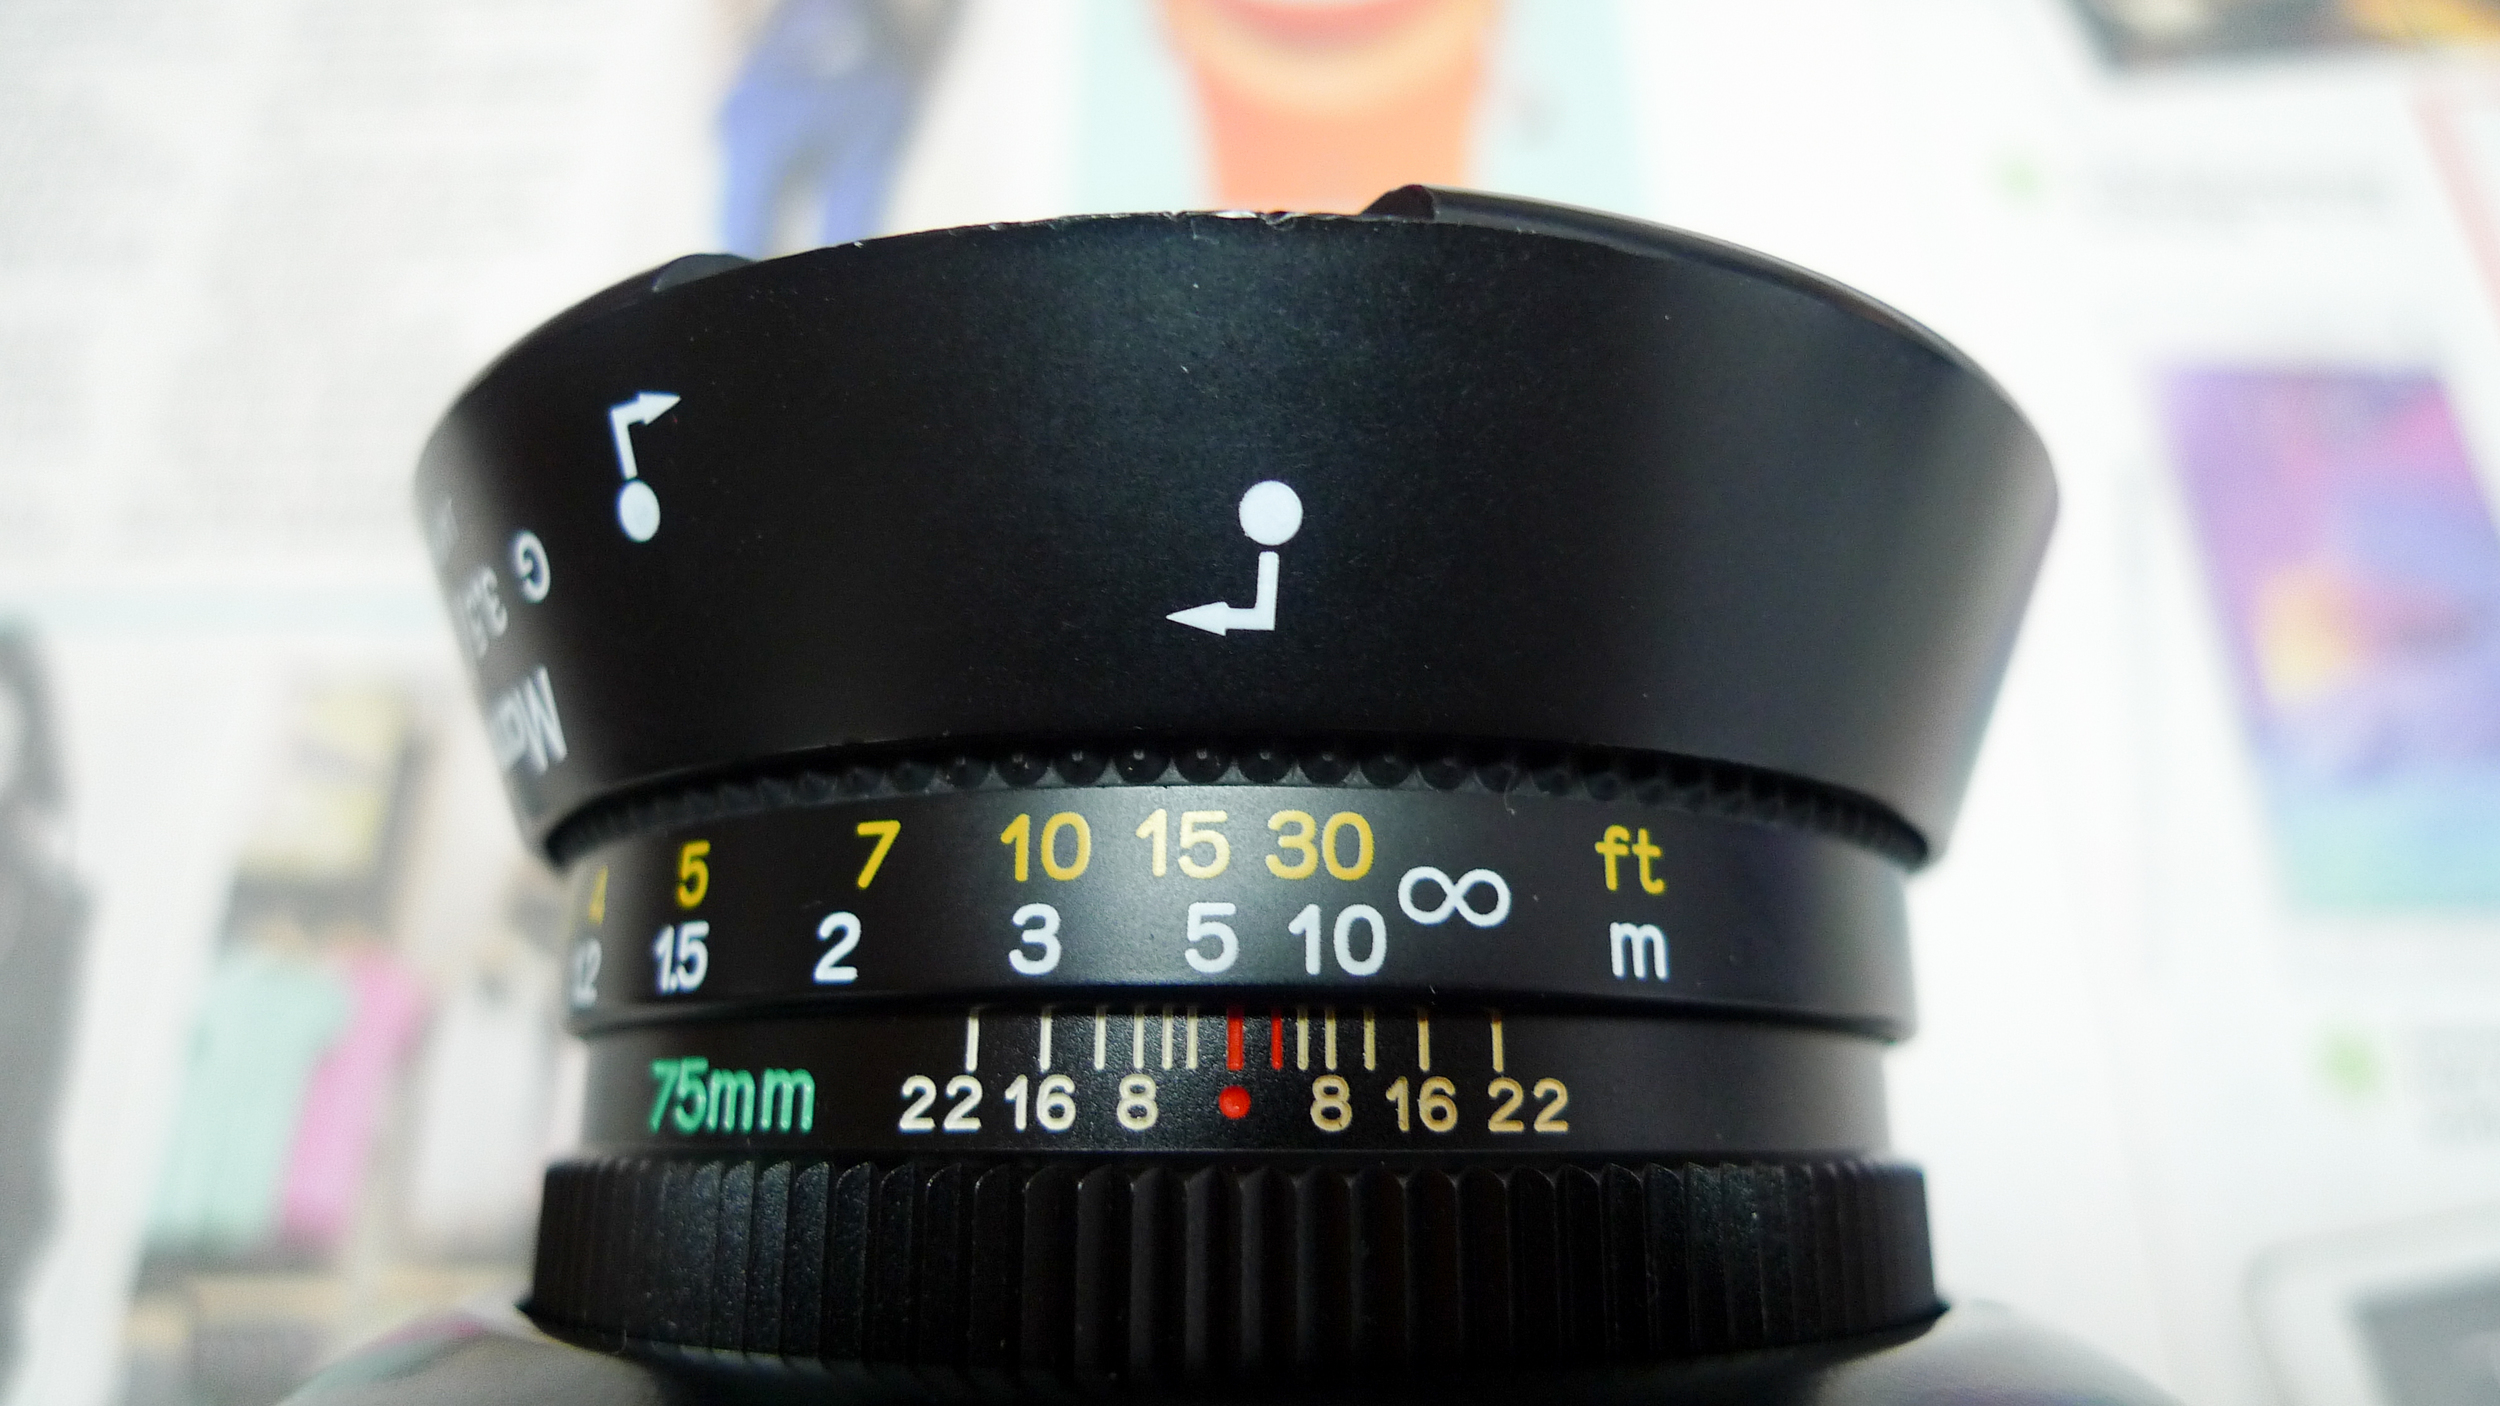 To keep the lens hood, reverse it and follow the labels